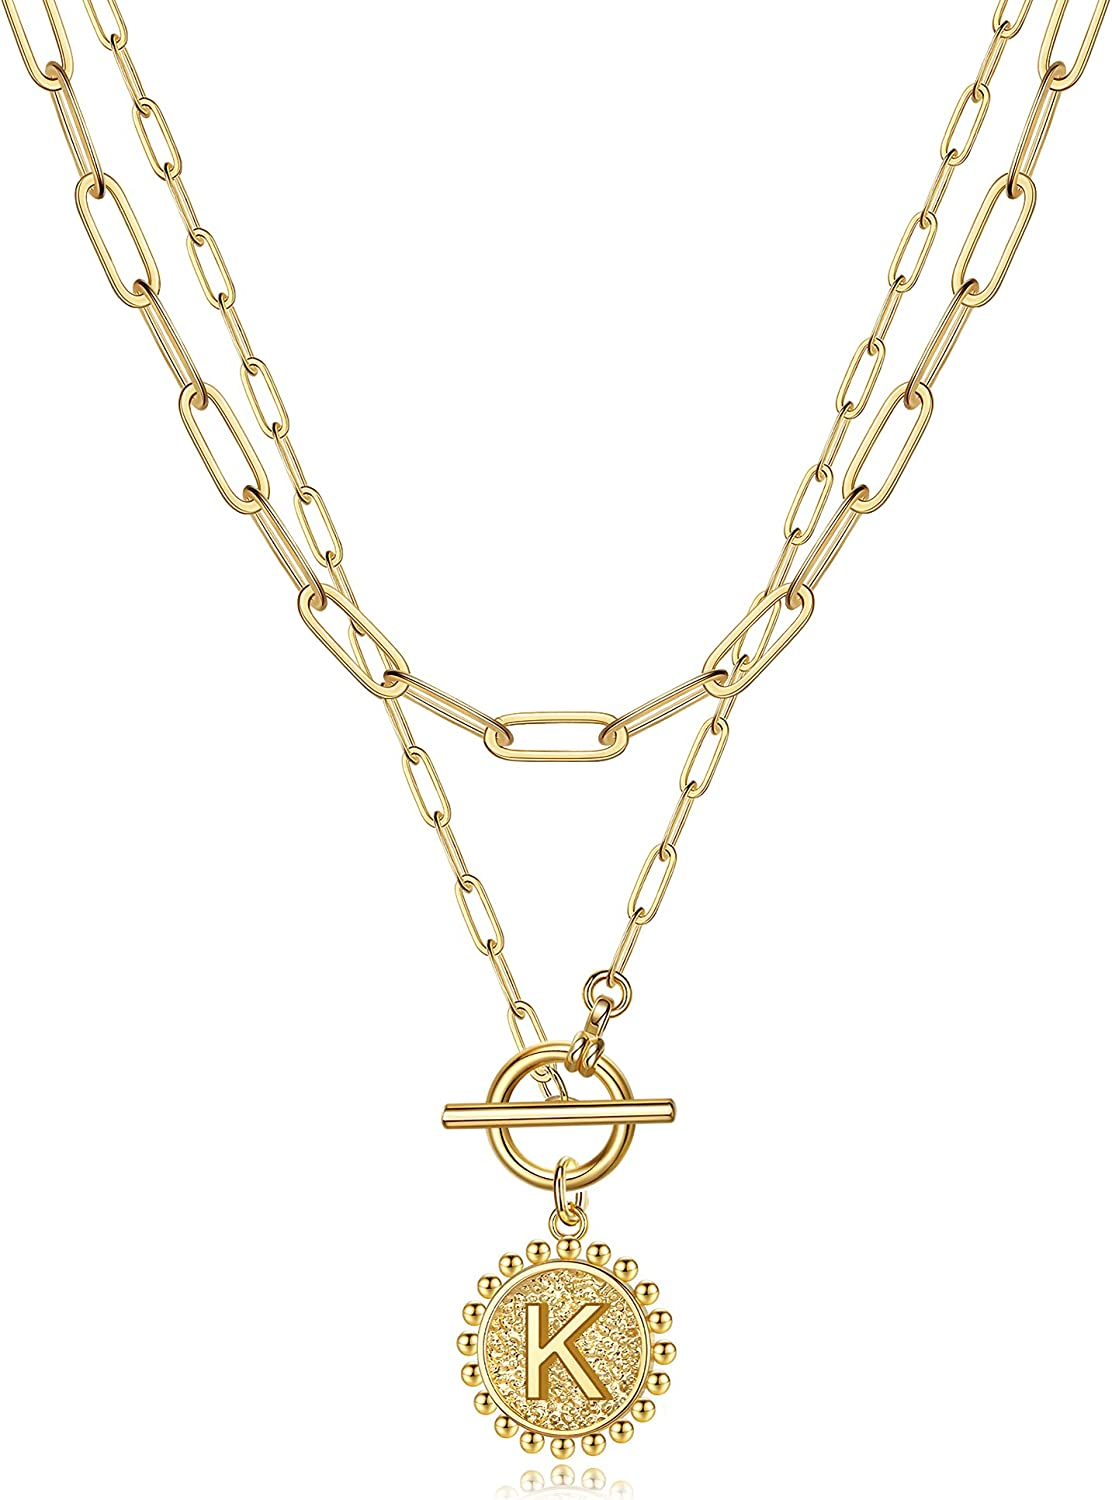 Gold Layered Initial Necklaces for Women, 14K Gold Plated Dainty Layering Paperclip Link Chain Necklace Personalized Toggle Clasp Coin Initial Pendant Layered Necklaces for Women Gold Jewelry